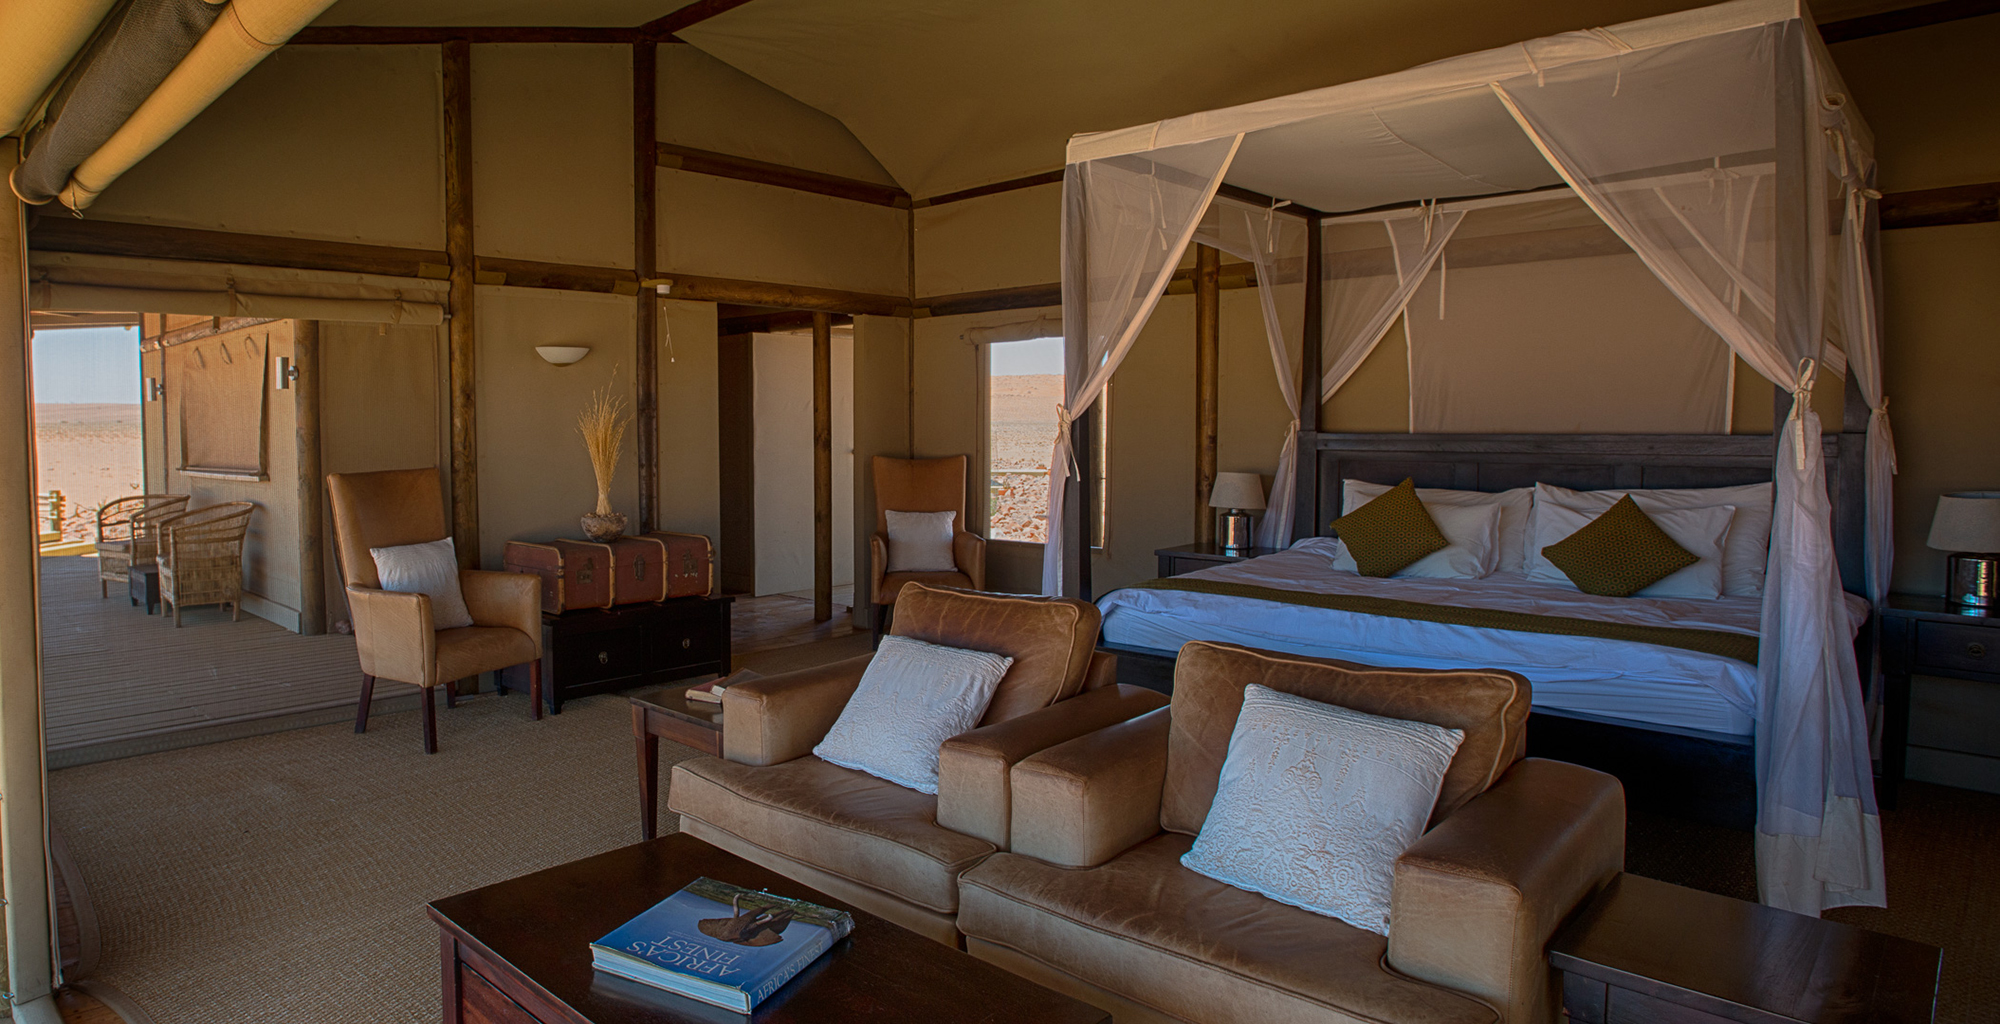 Namibia-Wolwedans-Private-Camp-Bedroom-Interior